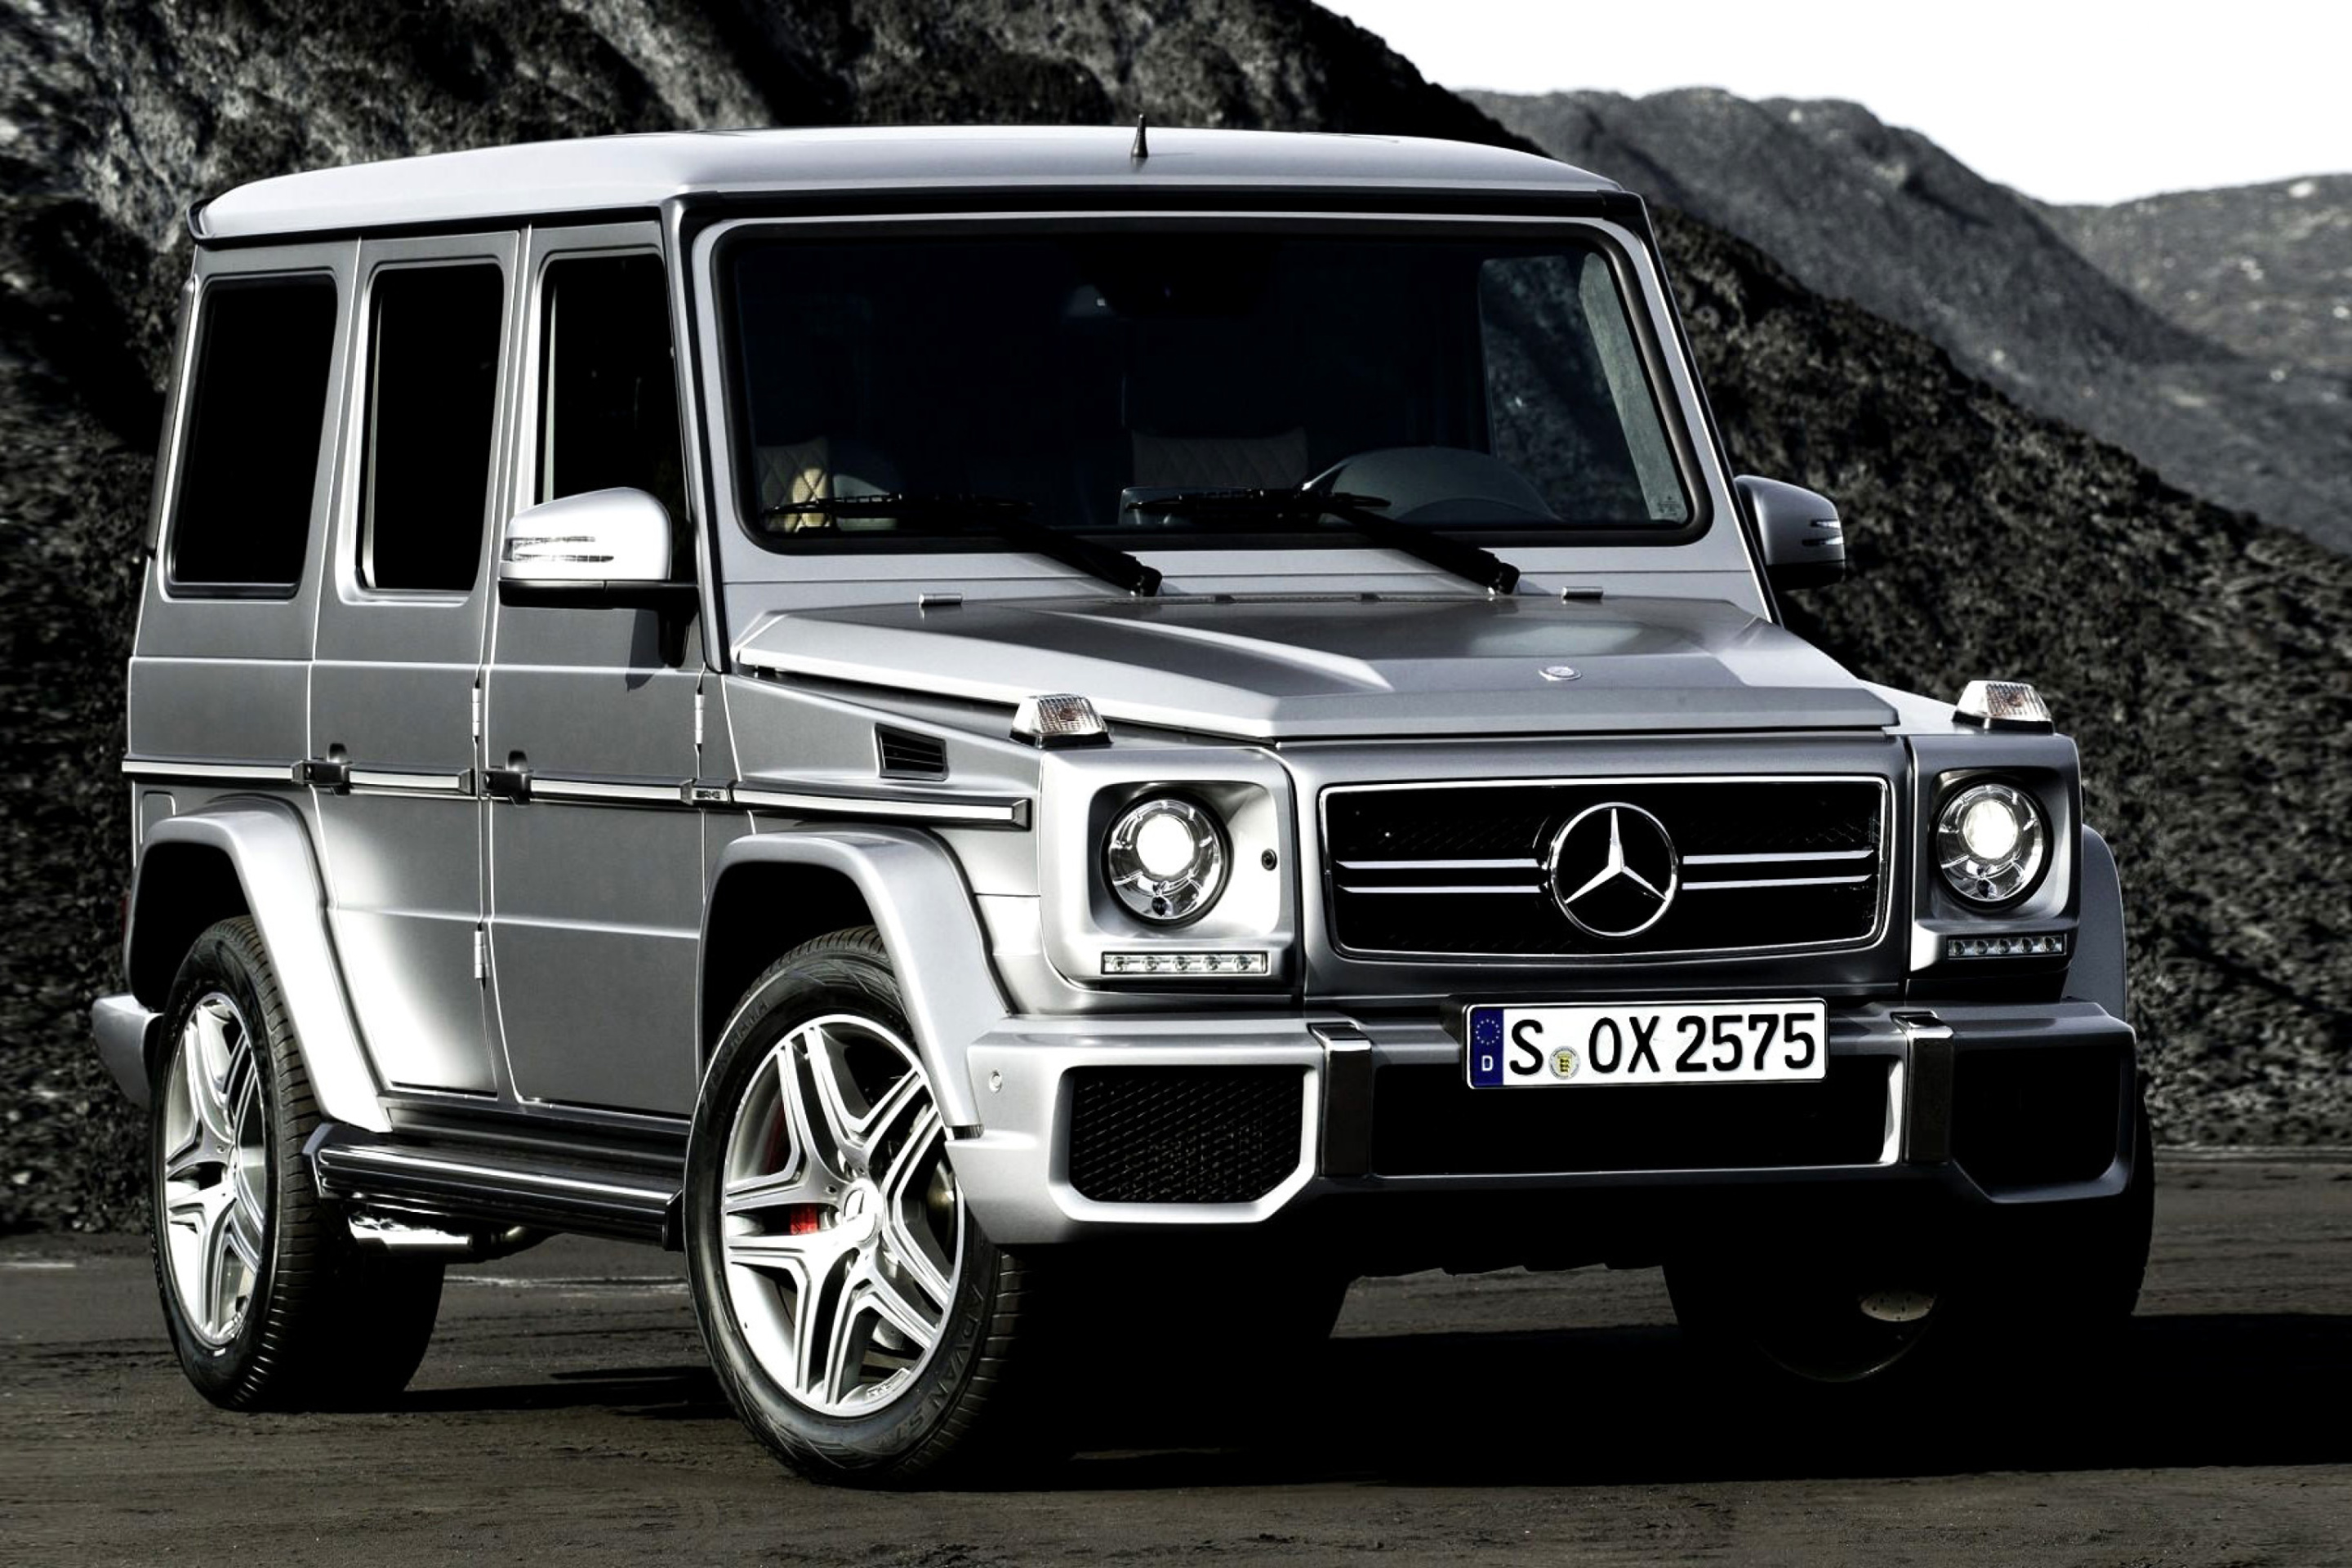 mercedes benz g class gelandewagen amg wallpaper for samsung galaxy s6 active. Black Bedroom Furniture Sets. Home Design Ideas